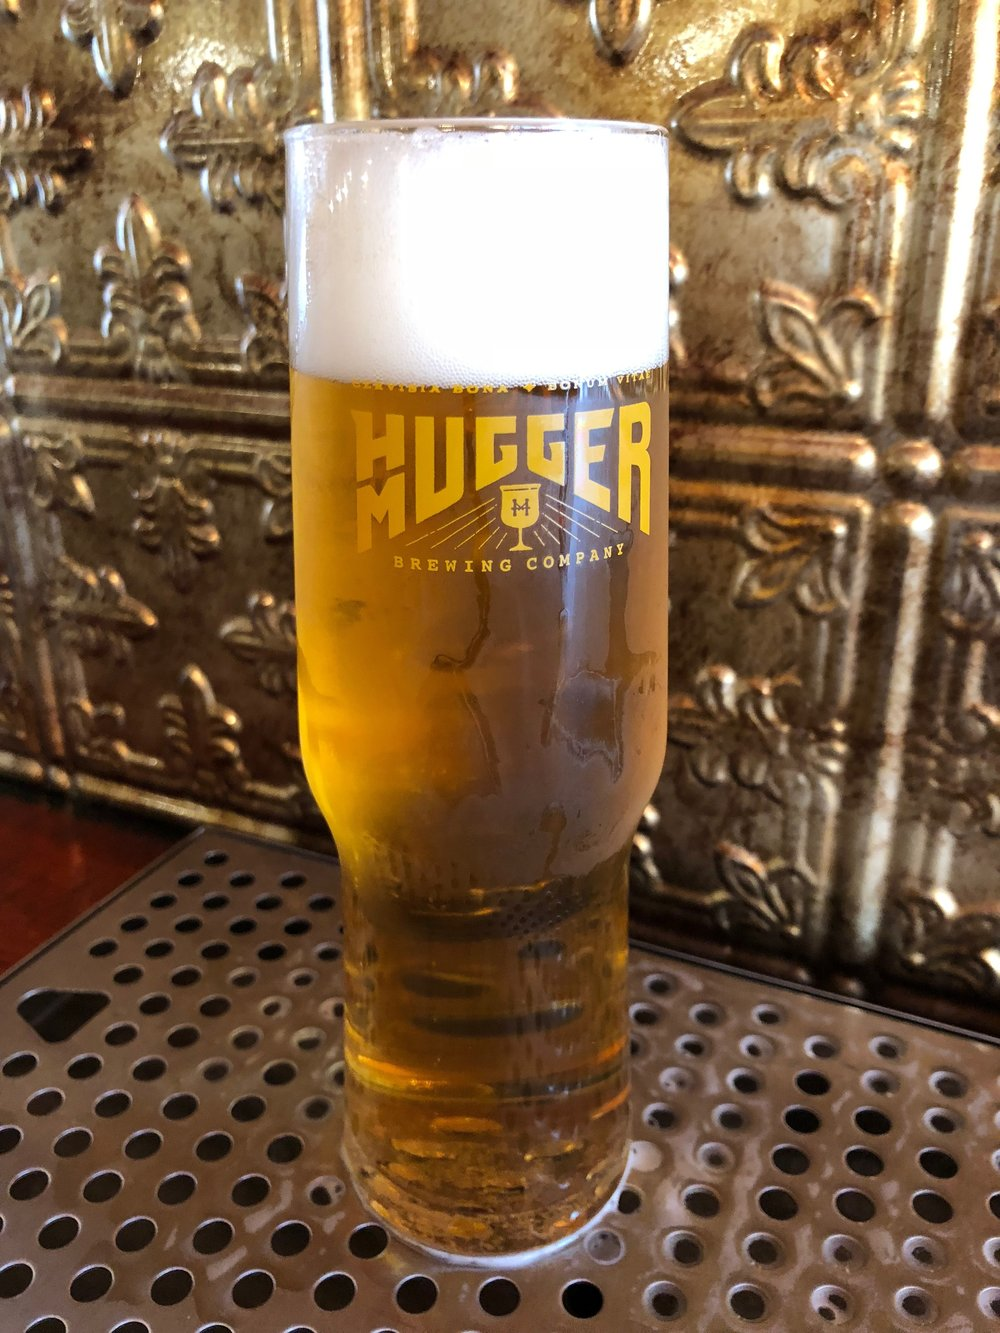 - Hey Buddy Golden Ale 5.2% ABV 12.7 IBUPale 2-Row, Vienna and a little White Wheat Malts. Light bodied with just enough hops to finish crisp.